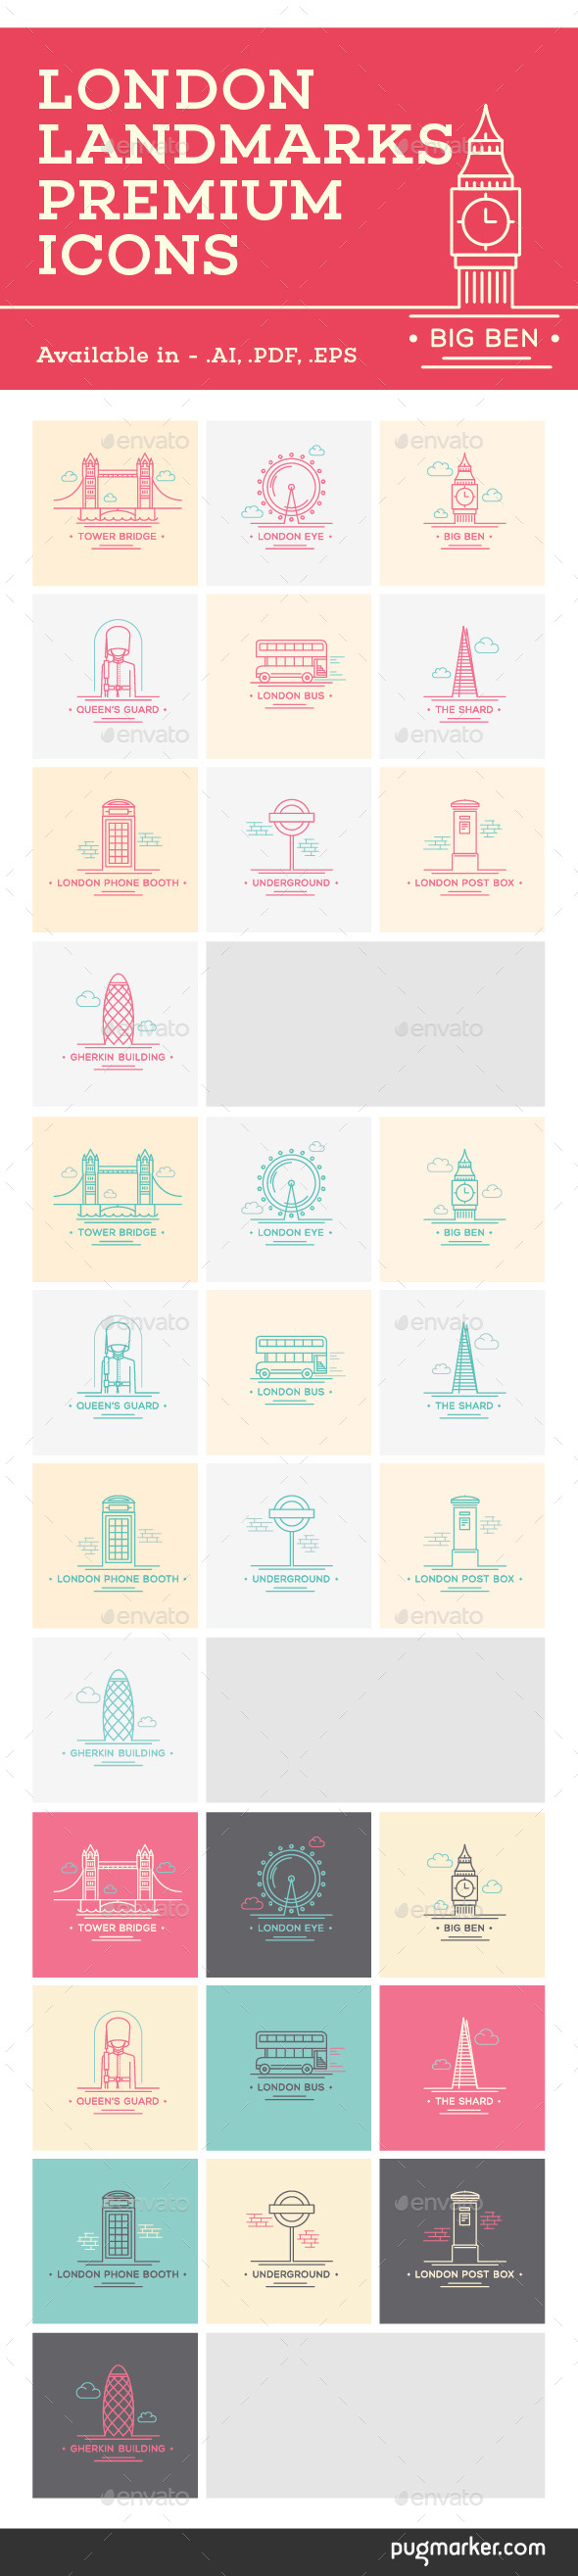 GraphicRiver London Landmarks Premium Icons 9441620